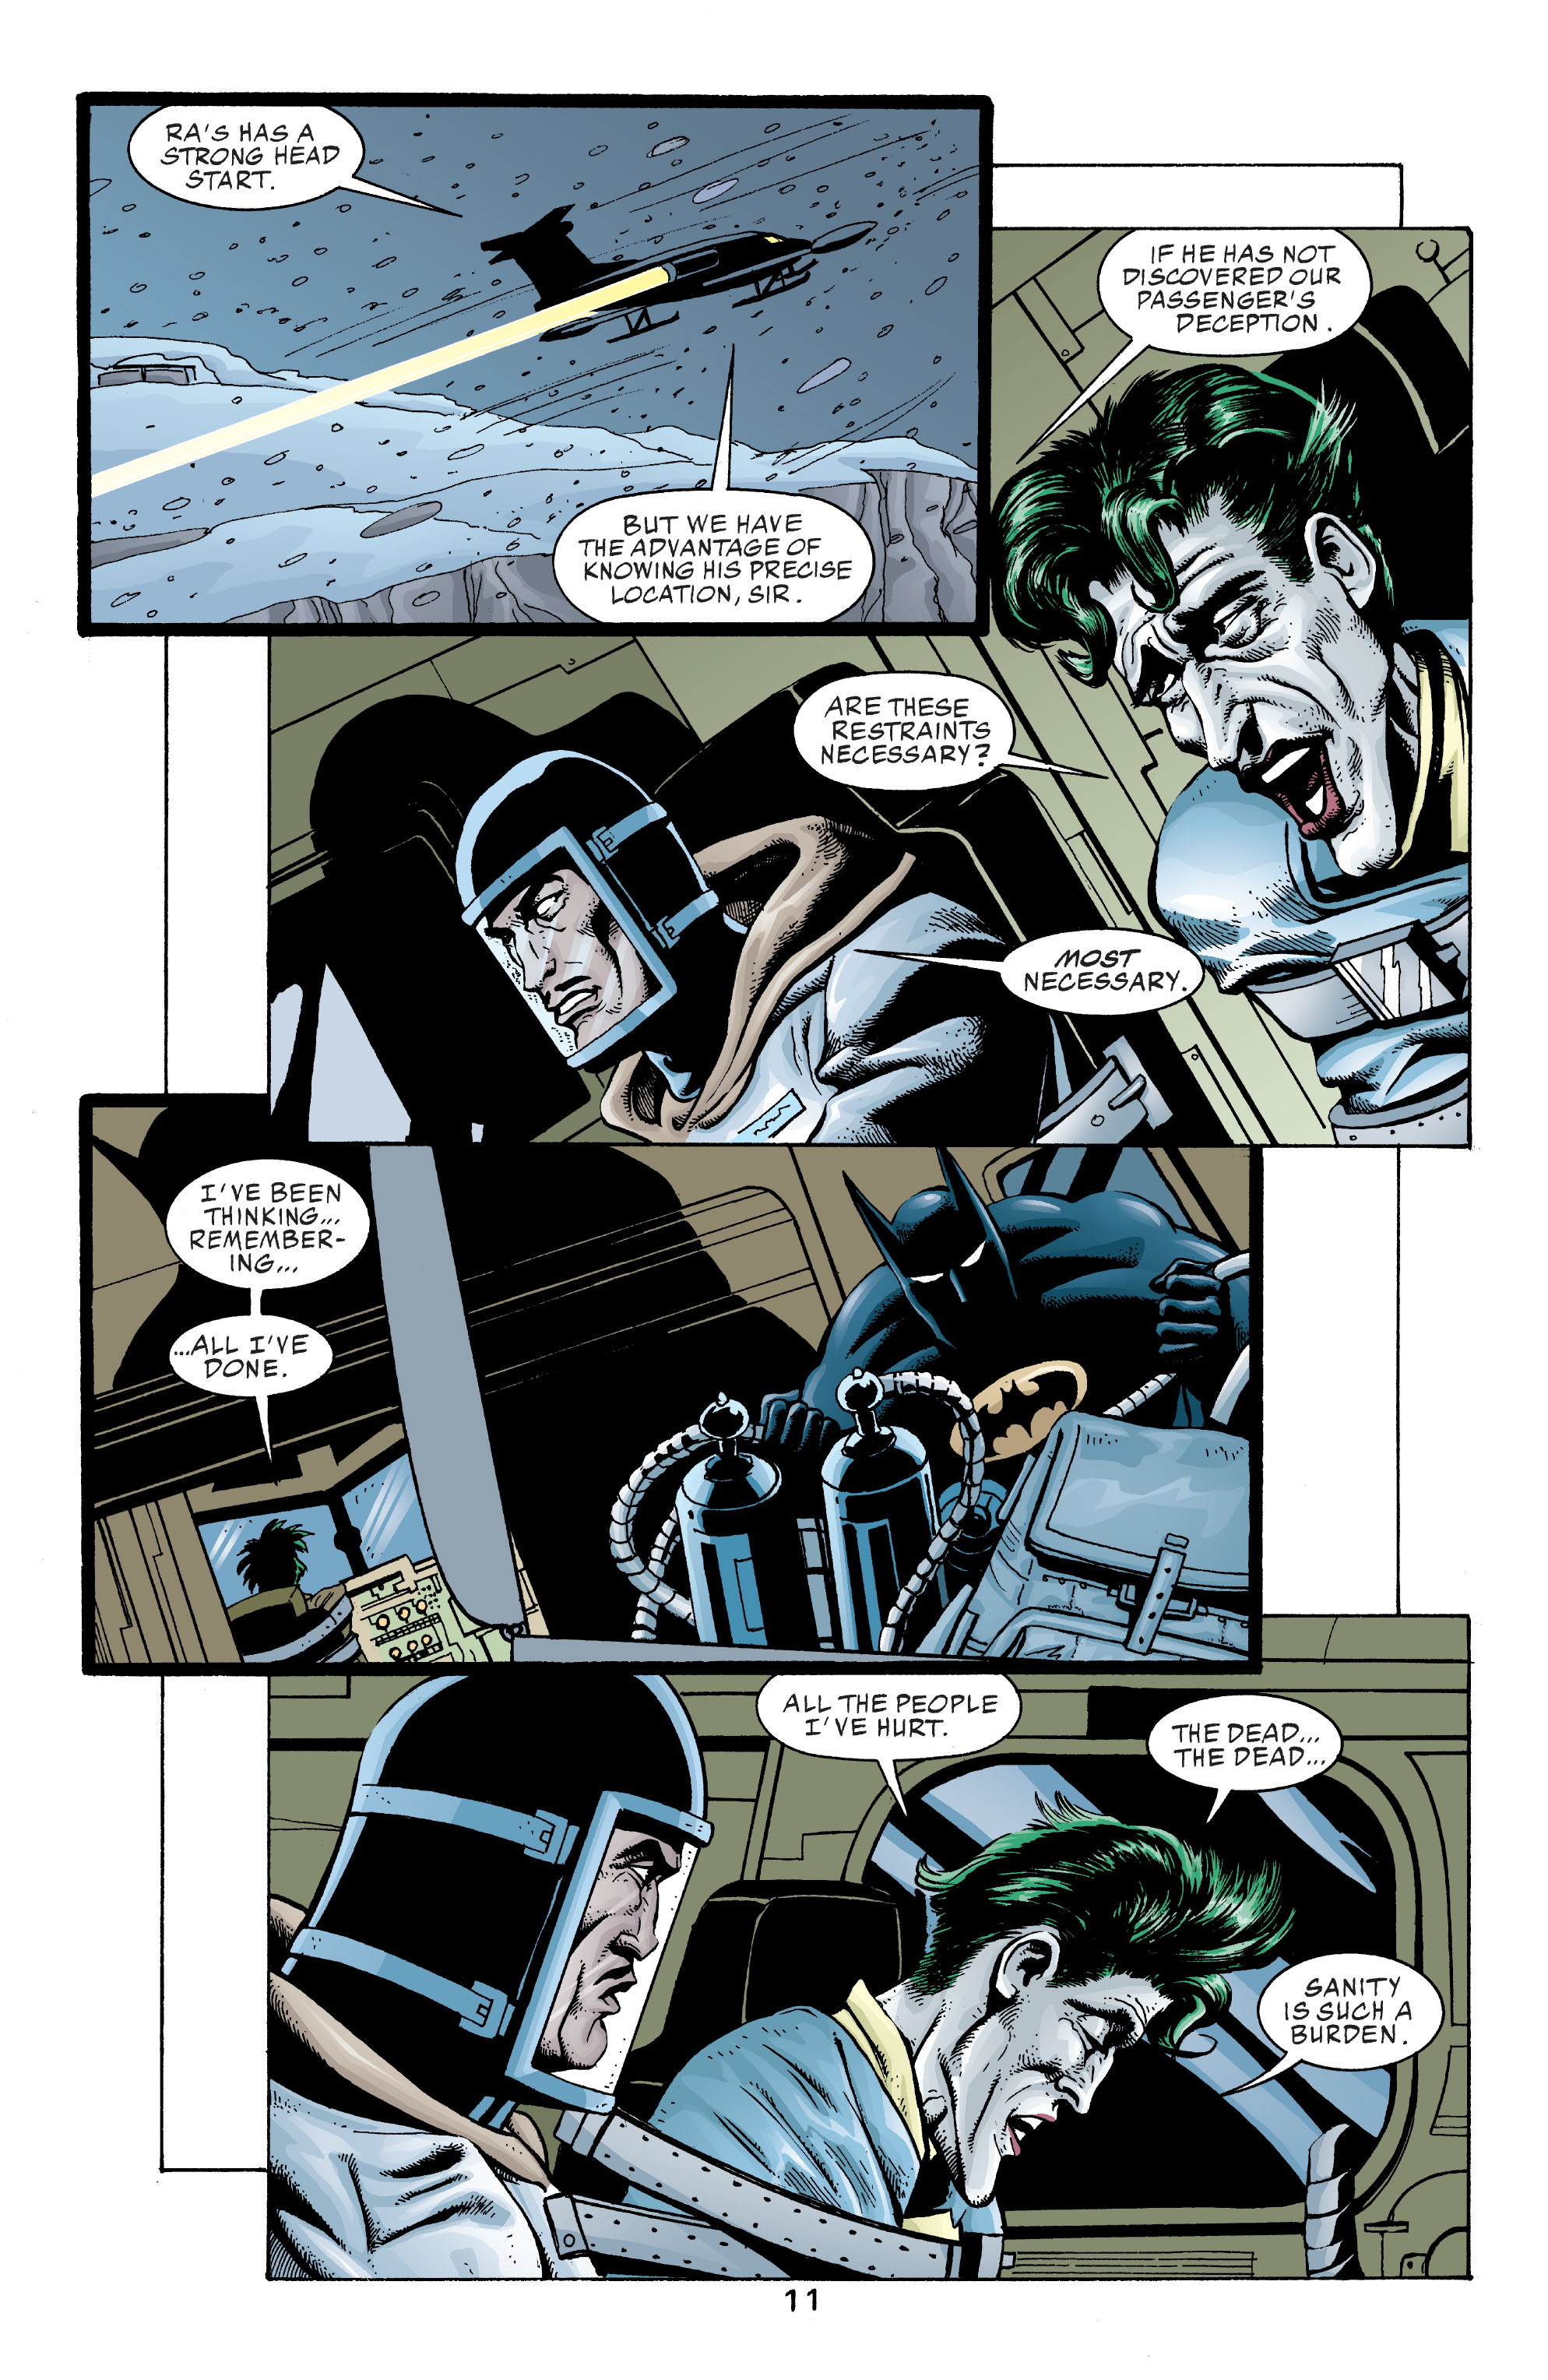 The Joker turns sane in the lazarus pit